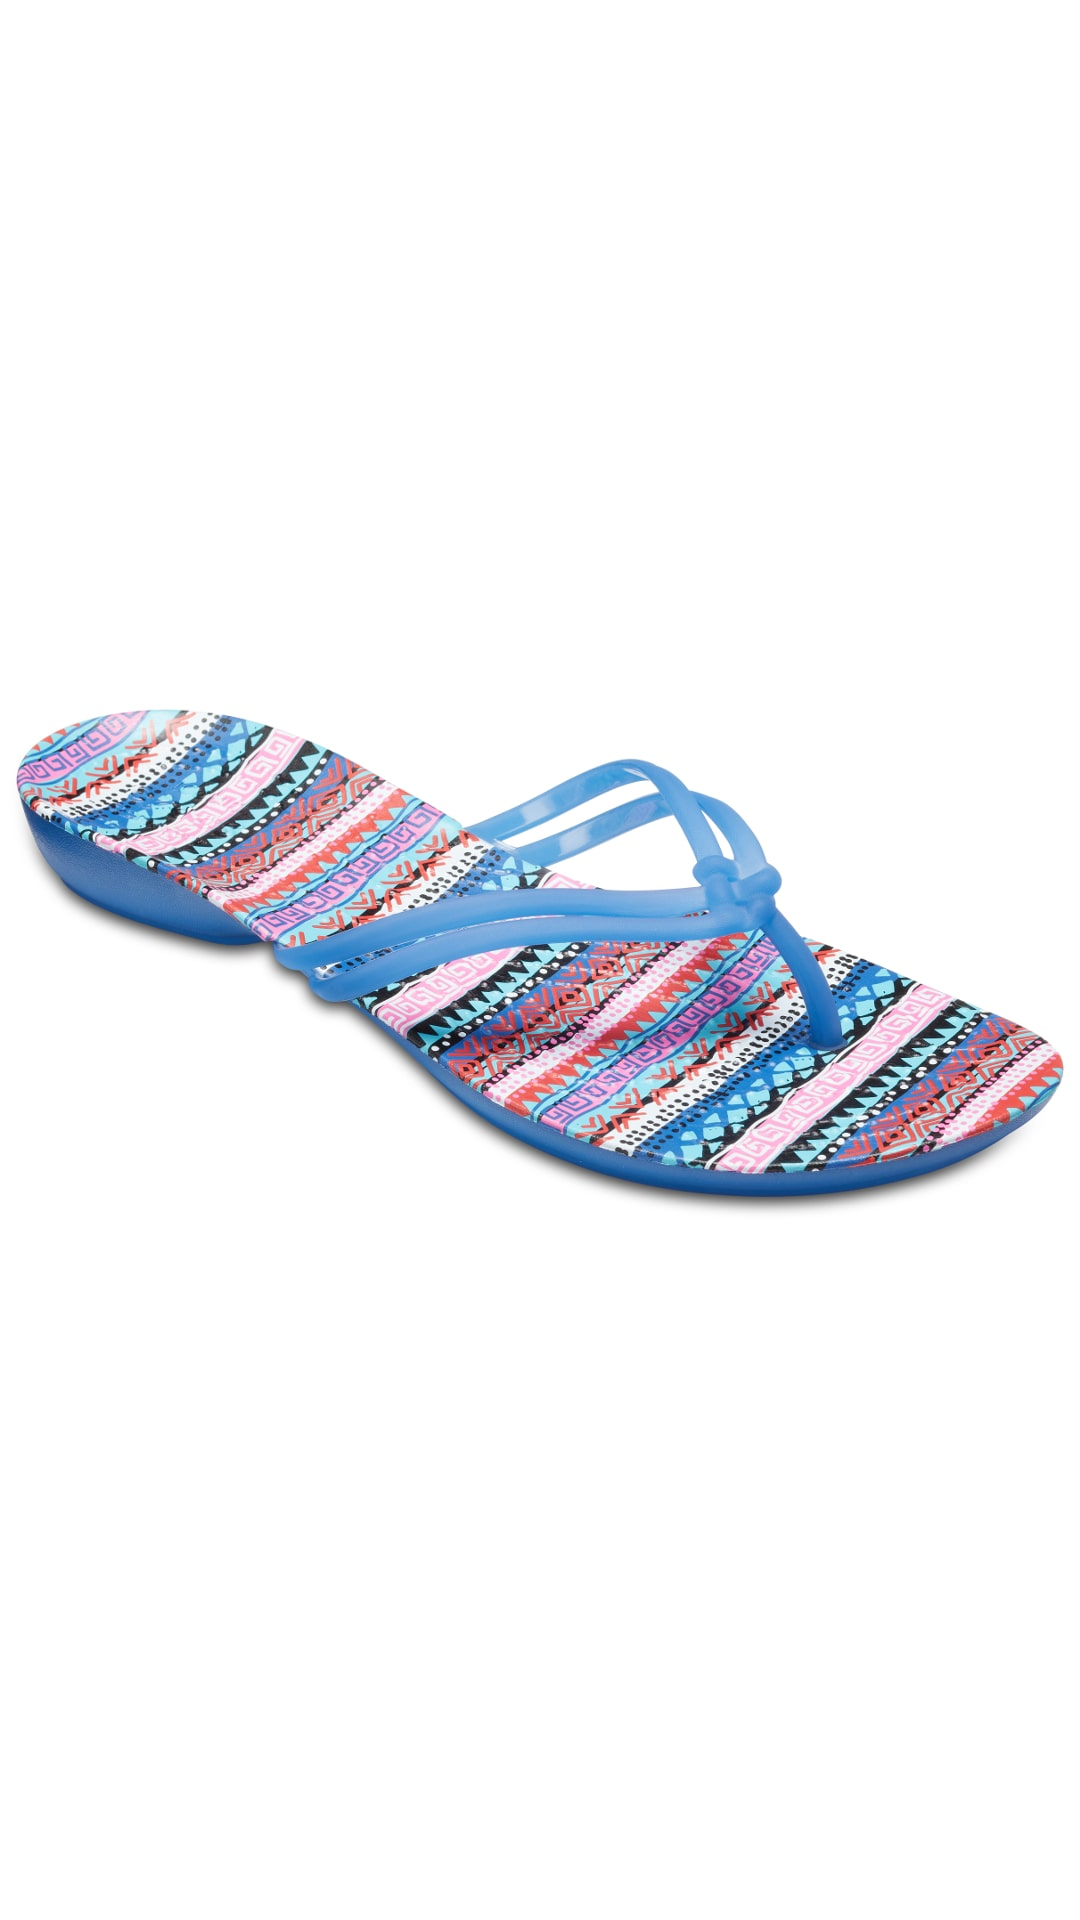 7dd1fe0400ffe Home Women s Fashion Footwear Slippers   Flip flops.  https   assetscdn1.paytm.com images catalog product . Crocs Blue Slippers